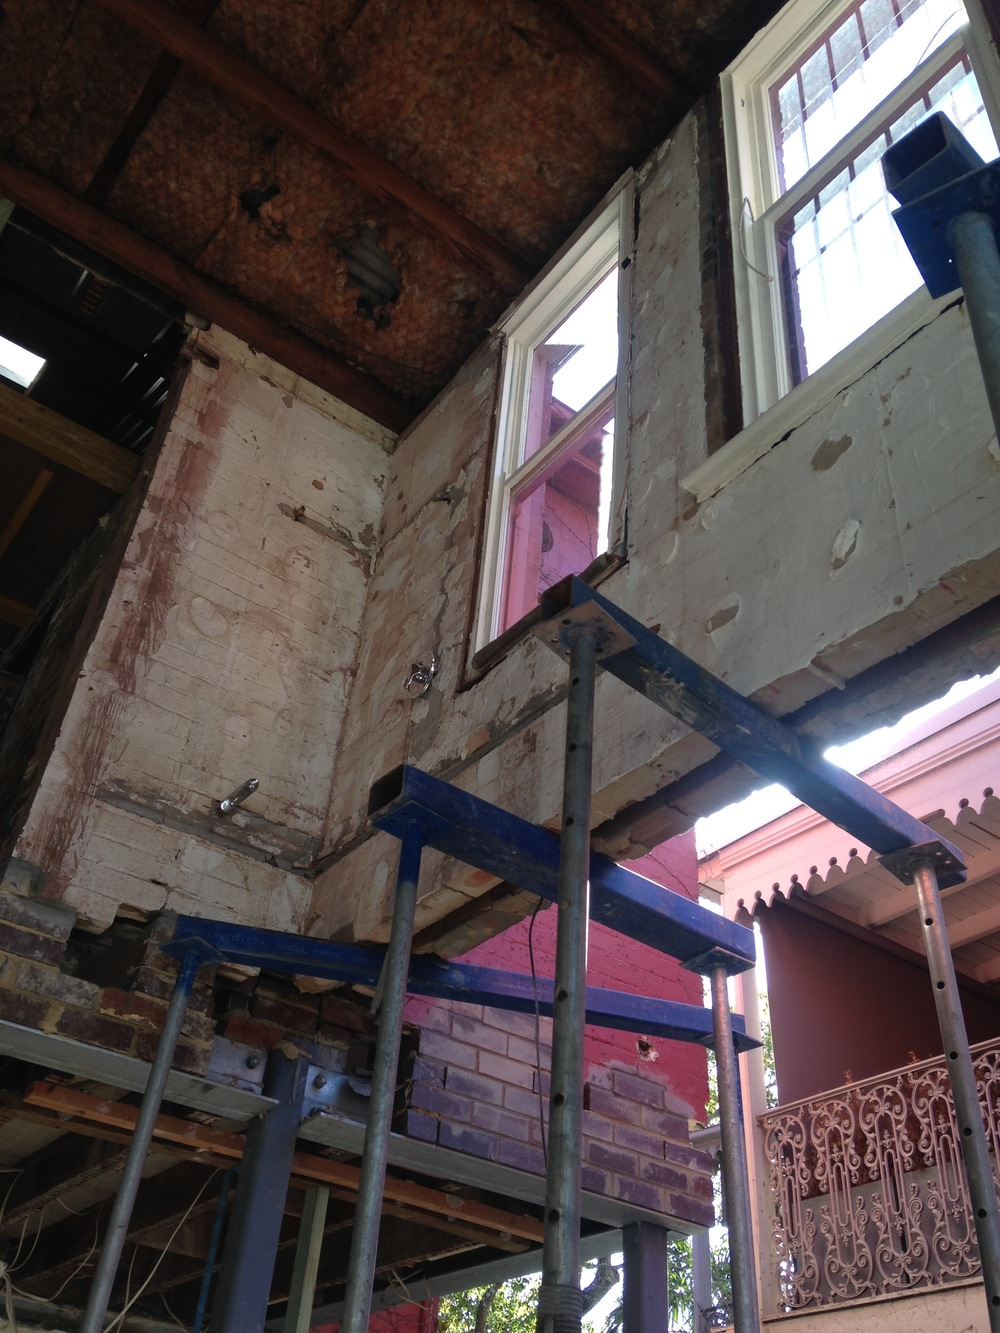 Steel pillars have been erected to hold up the rest of the house.